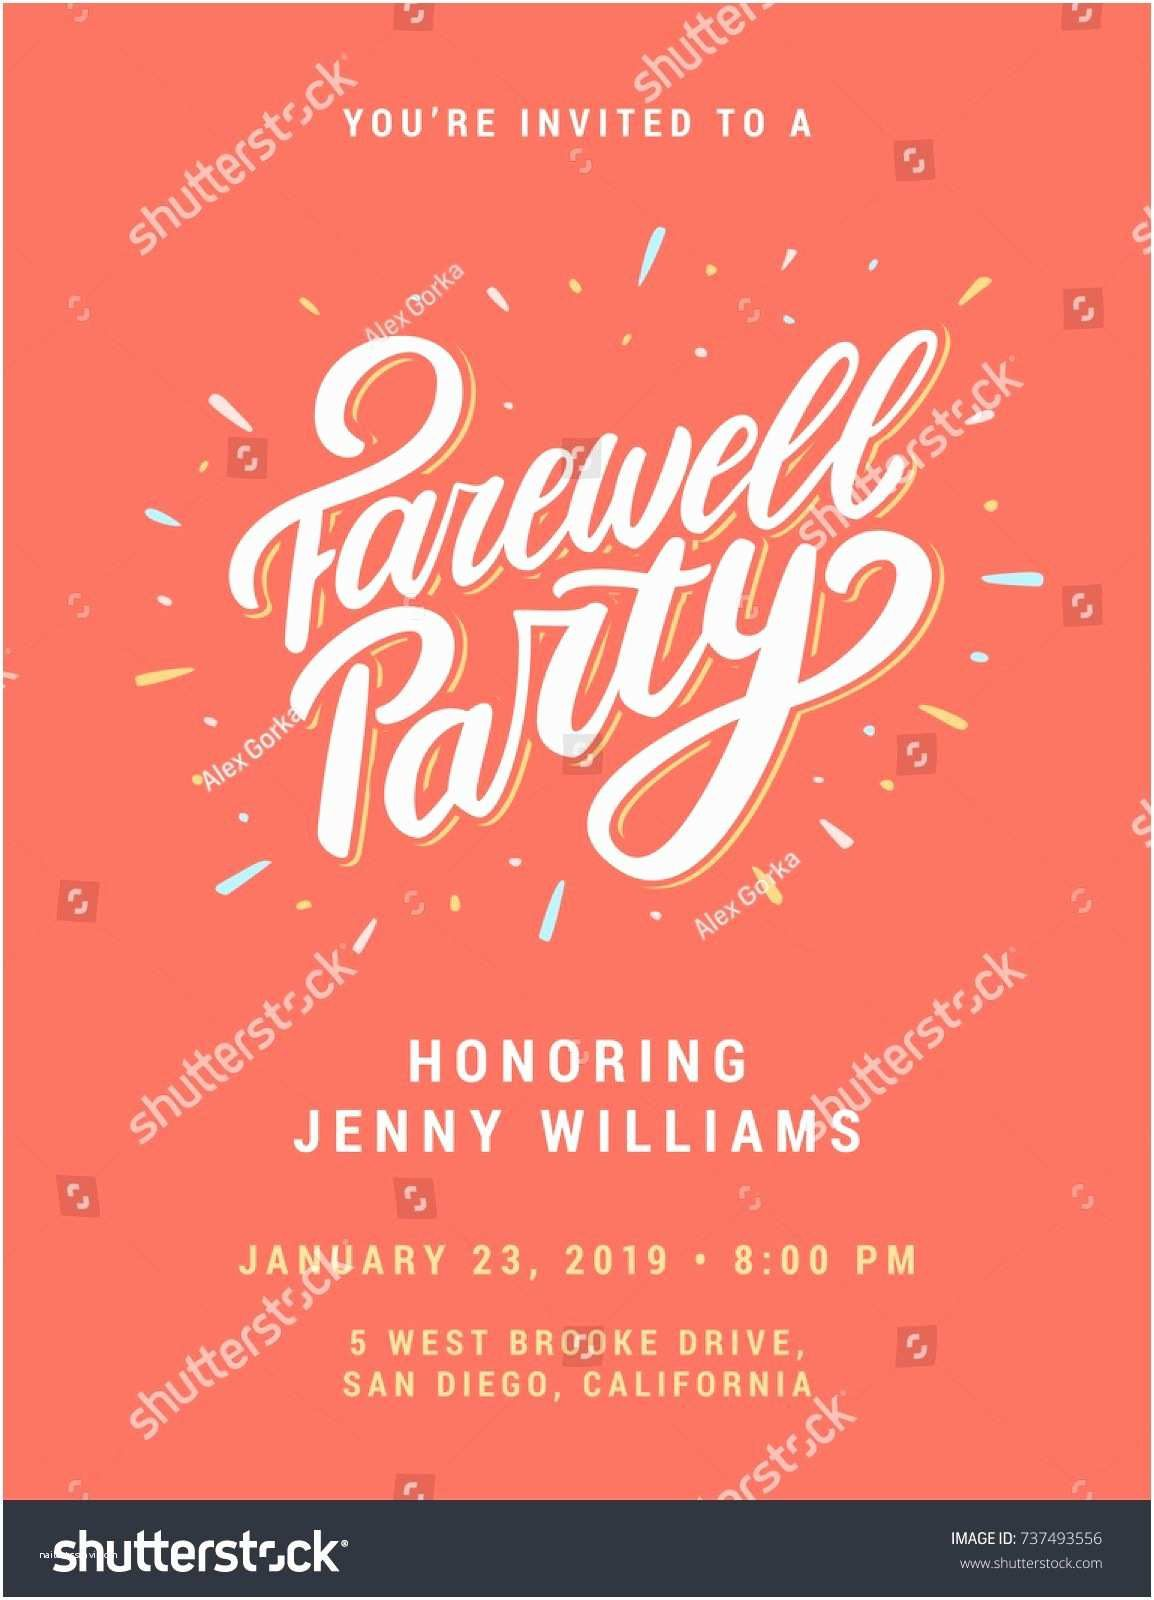 007 Dreaded Going Away Party Invitation Template High Resolution  Free PrintableFull